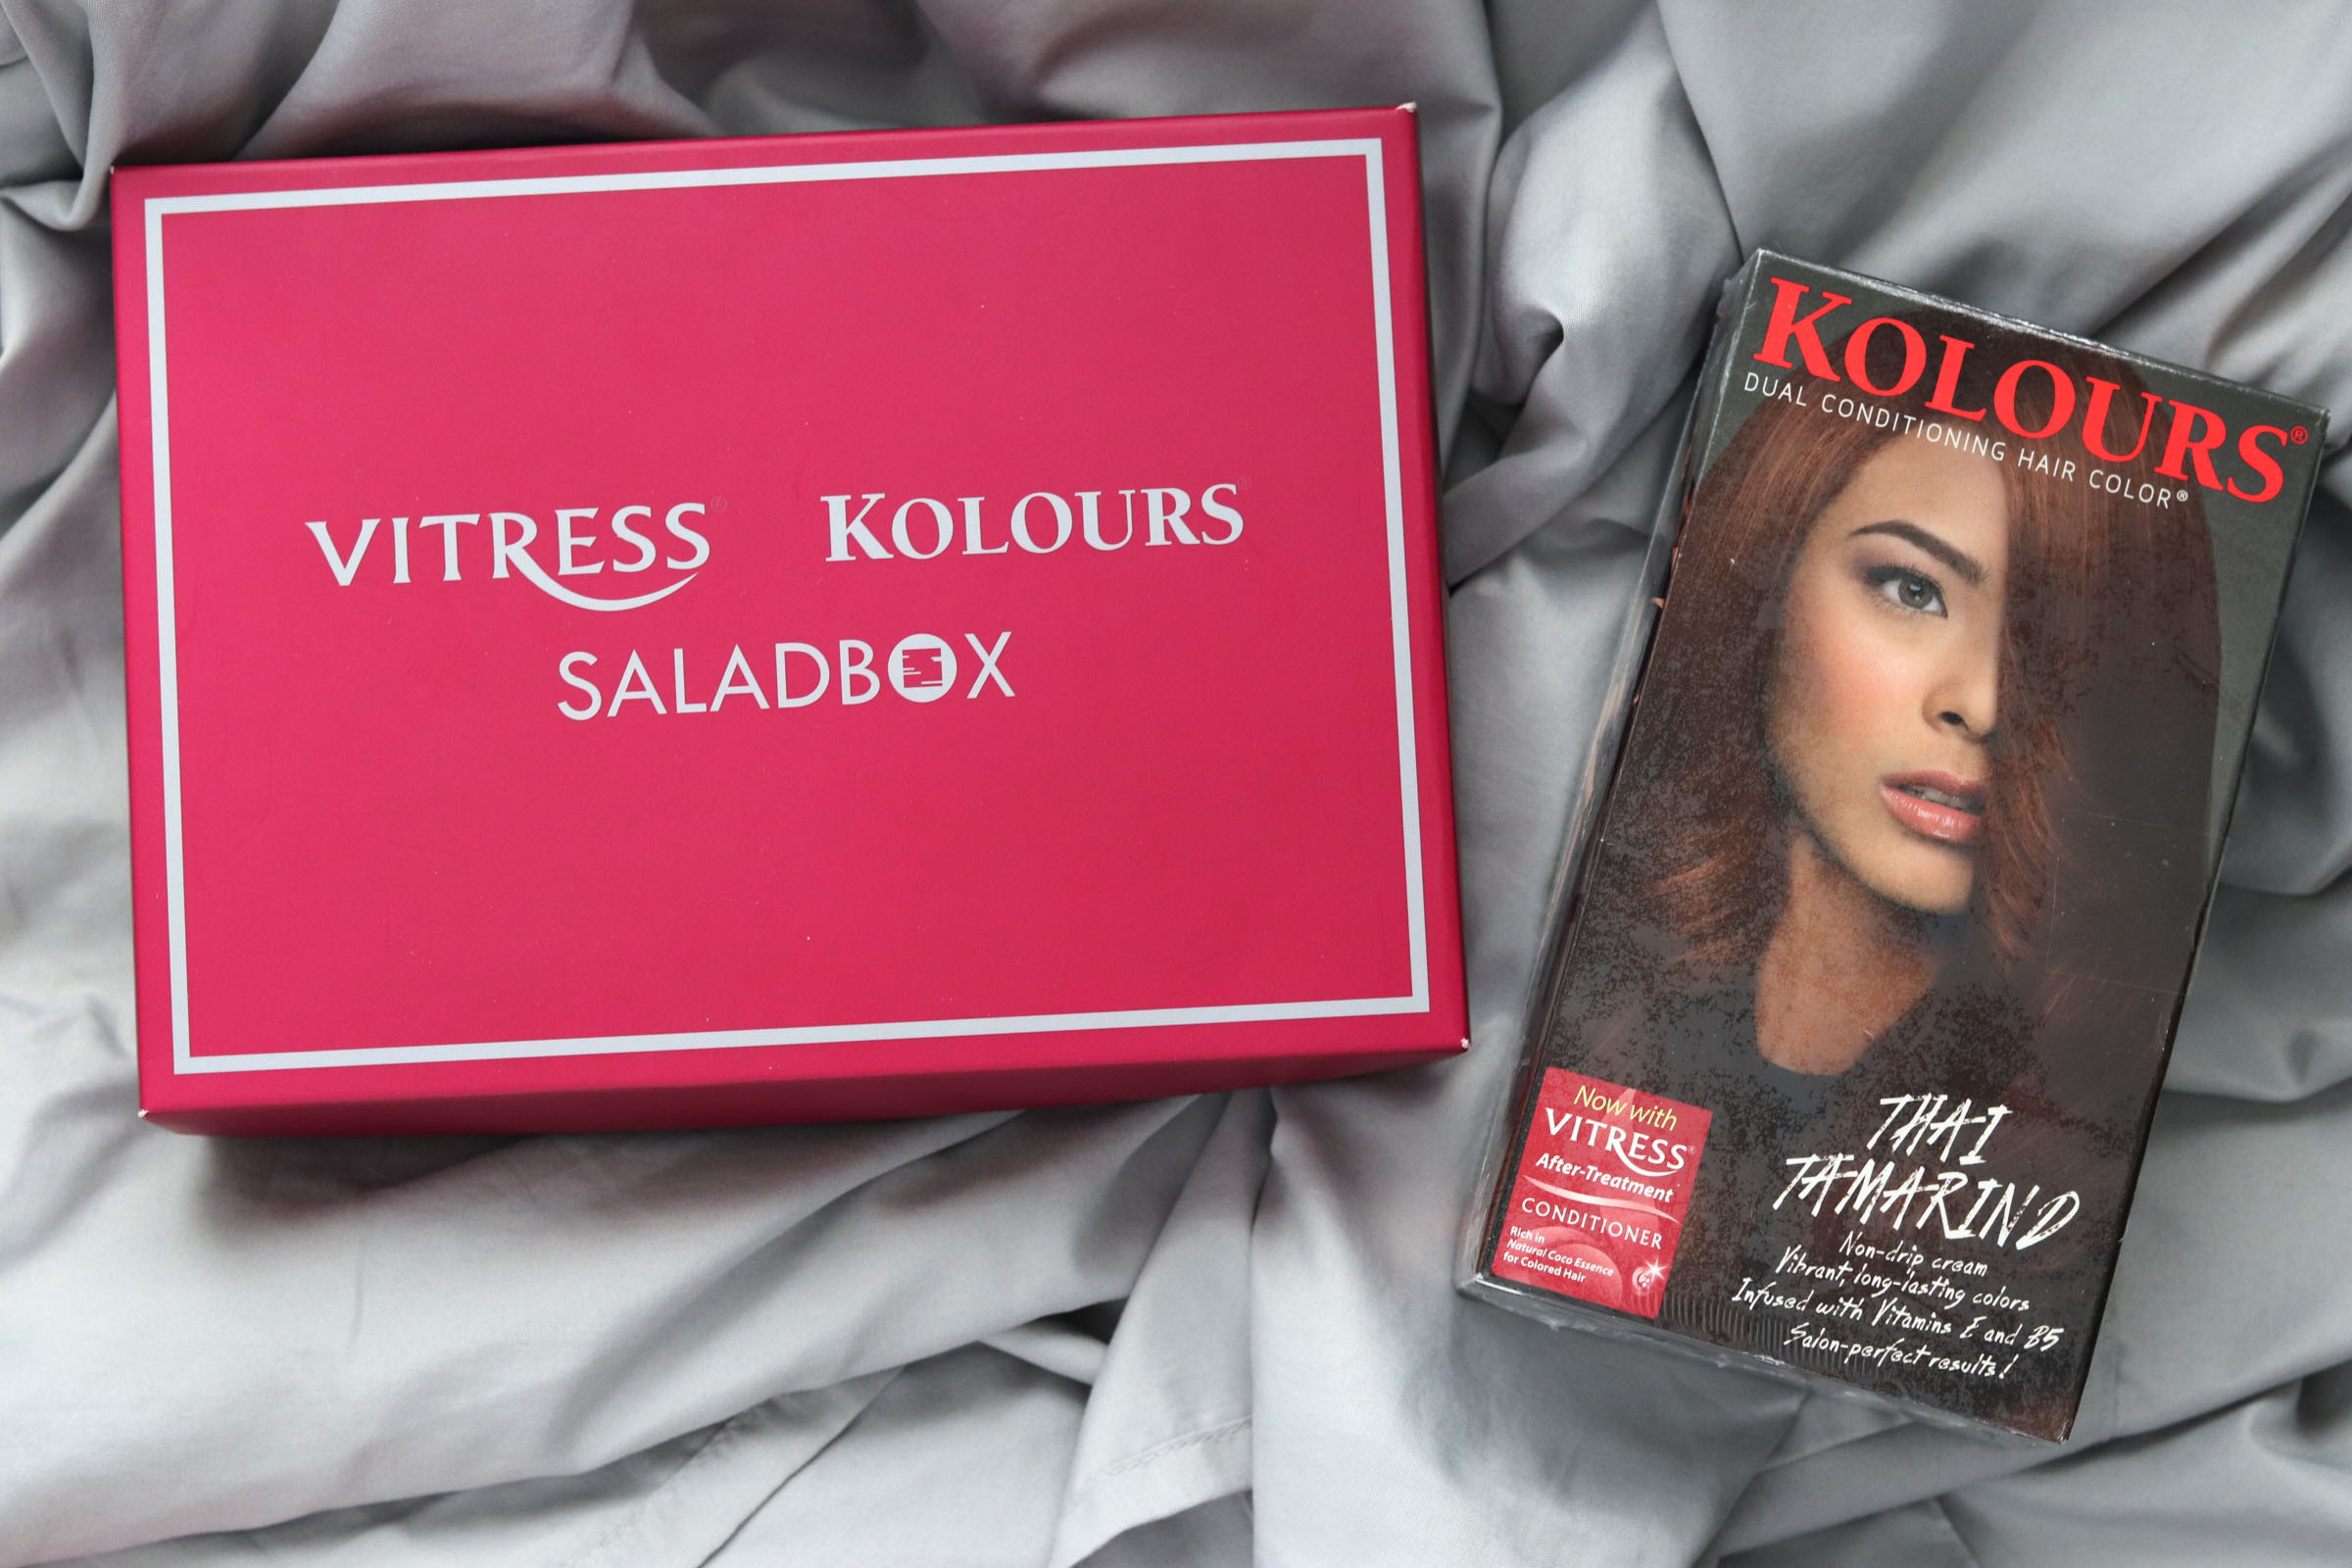 [VLOG] Saladbox Unboxing: First Impressions + What Happened To My Hair